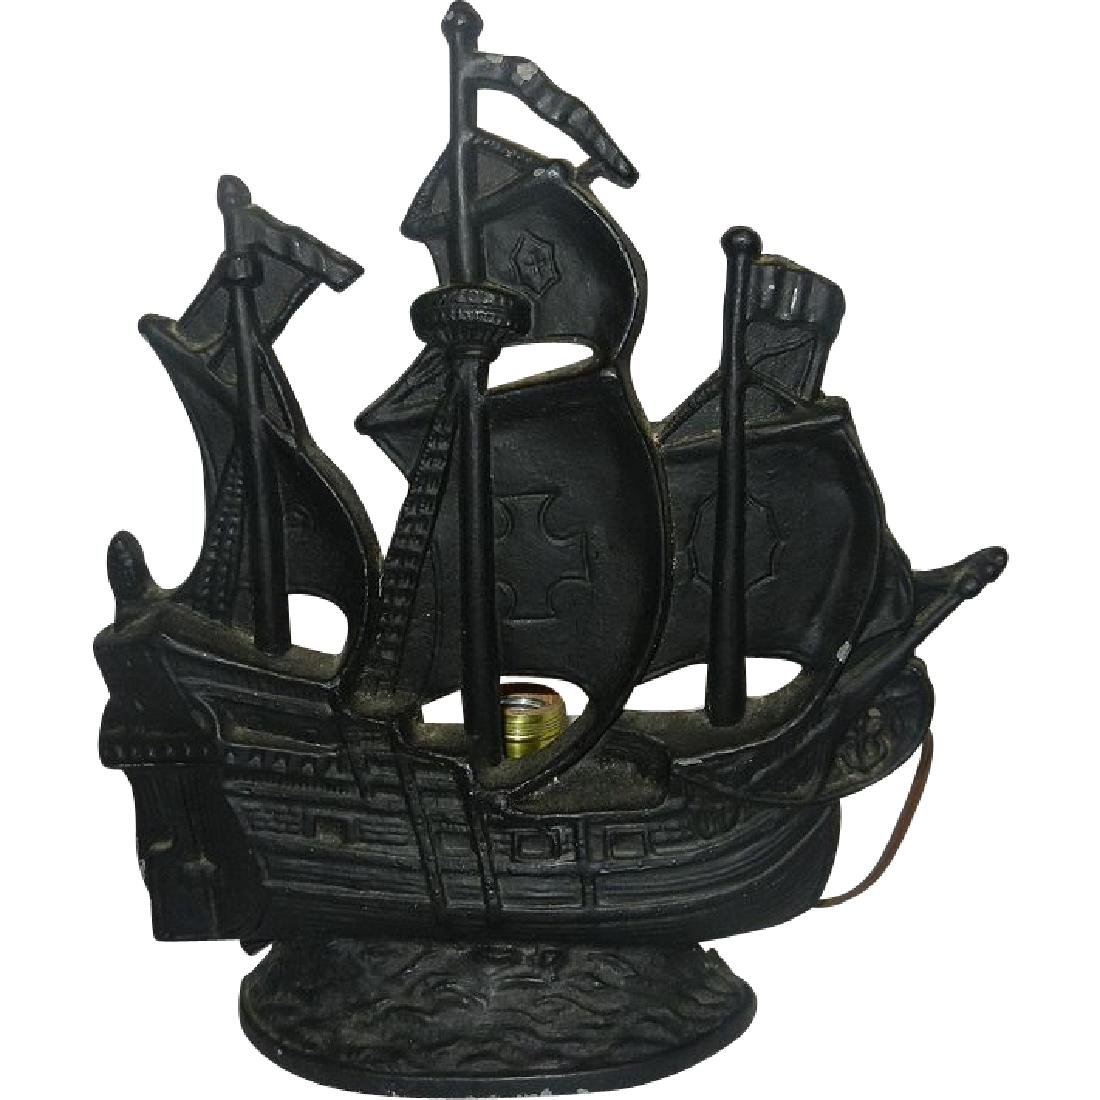 Pleasing Vintage Cast Brass Metal Figural Pirate Ship Table Lamp Interior Design Ideas Clesiryabchikinfo